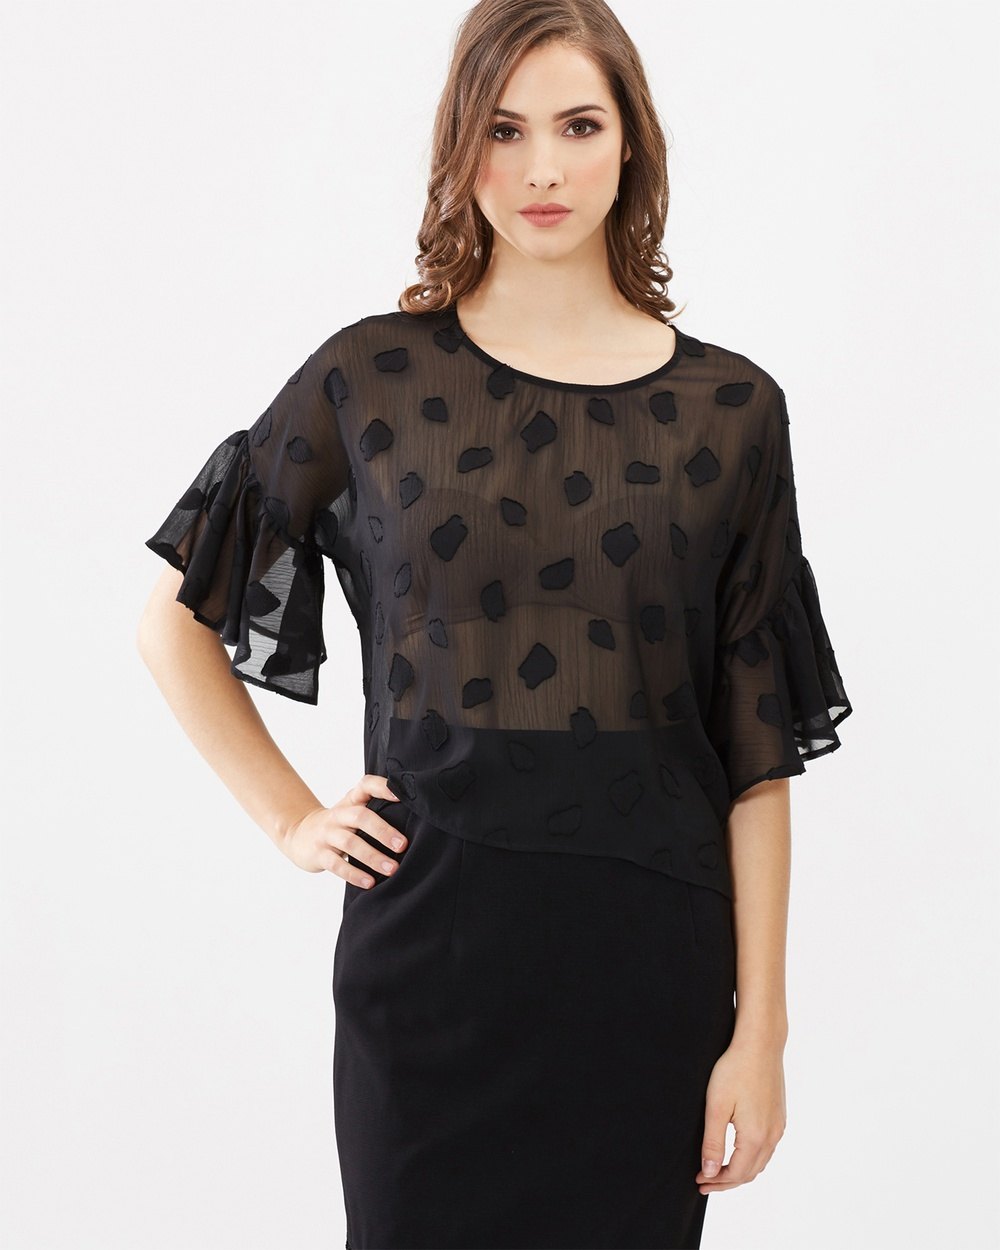 Honey and Beau Paradise Top Tops Black Paradise Top